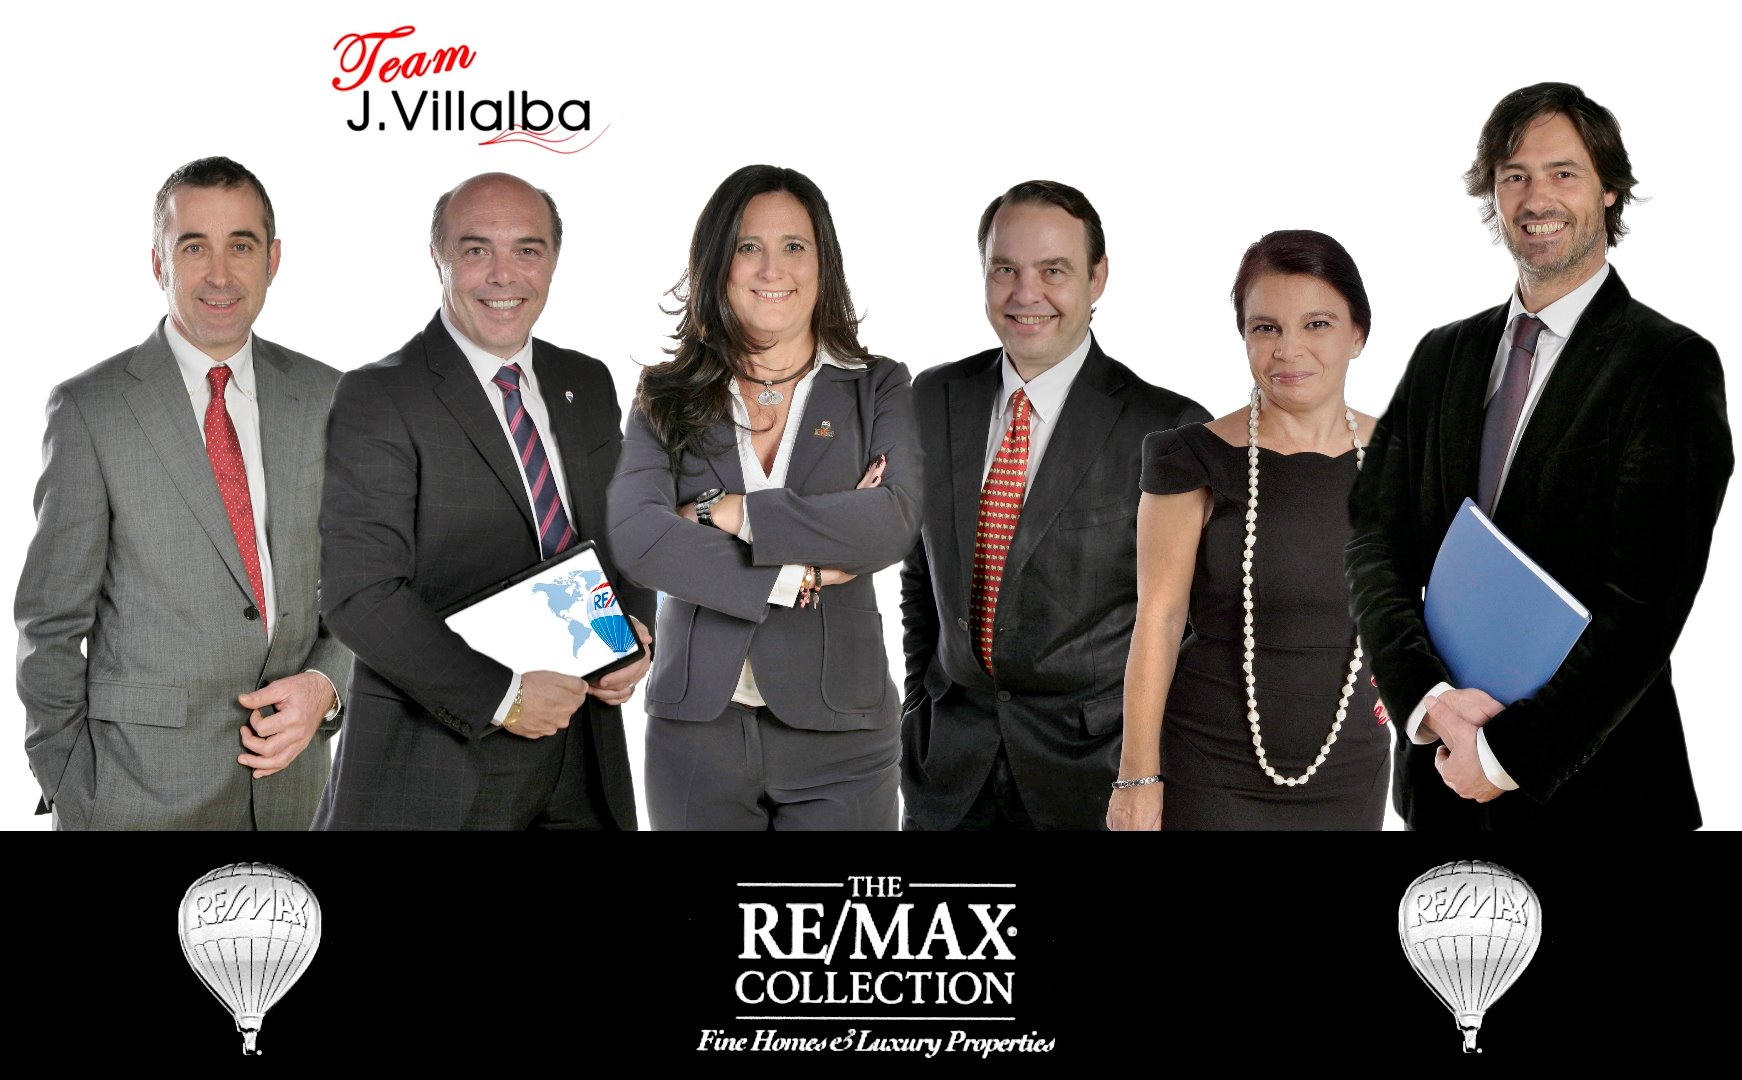 TEAM JAVIER VILLALBA REMAX